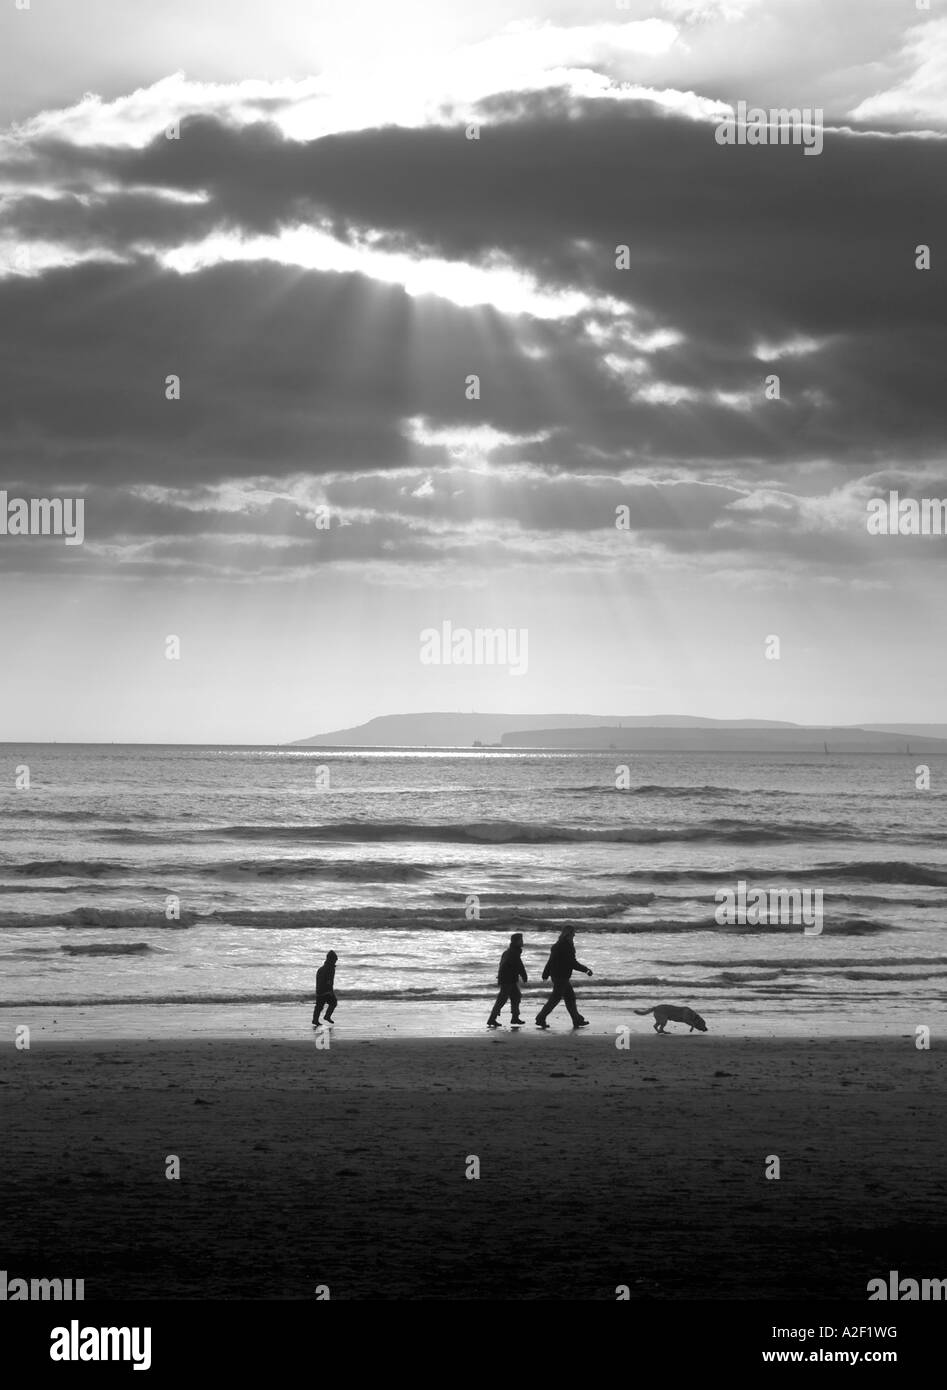 Family walking their dog on the beach - Stock Image